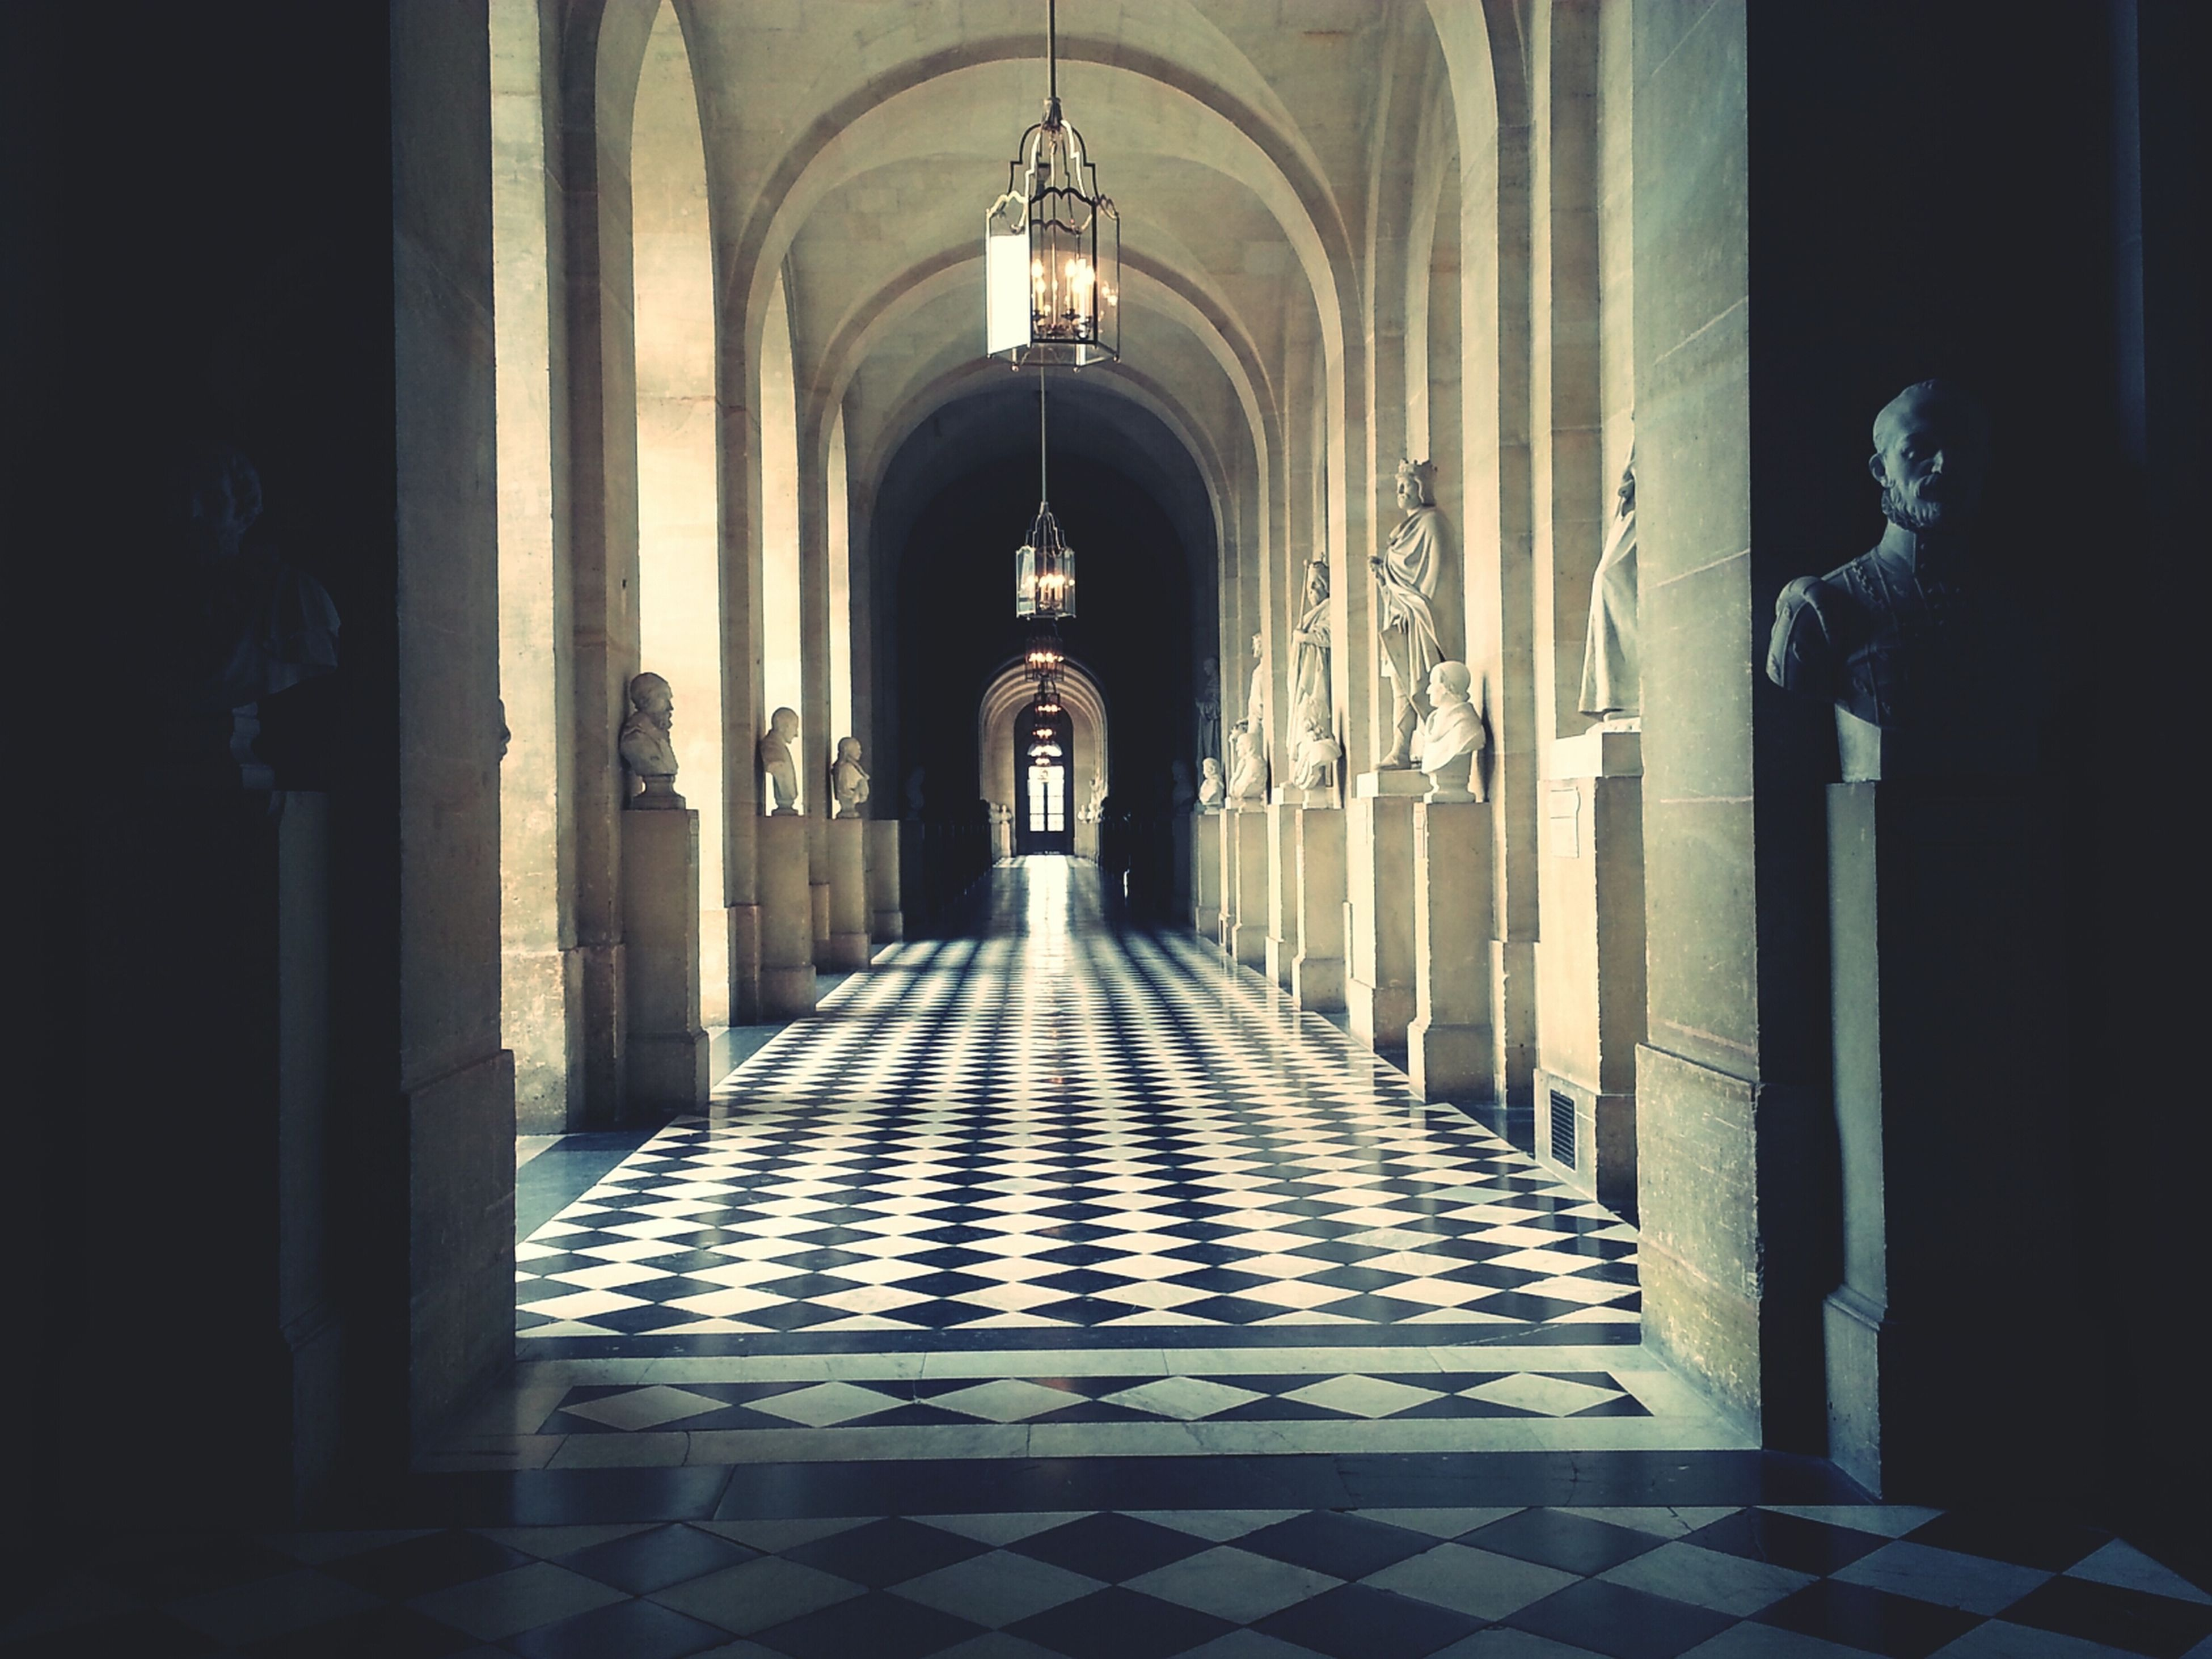 indoors, corridor, architecture, arch, the way forward, religion, place of worship, built structure, church, spirituality, architectural column, diminishing perspective, colonnade, history, in a row, column, flooring, historic